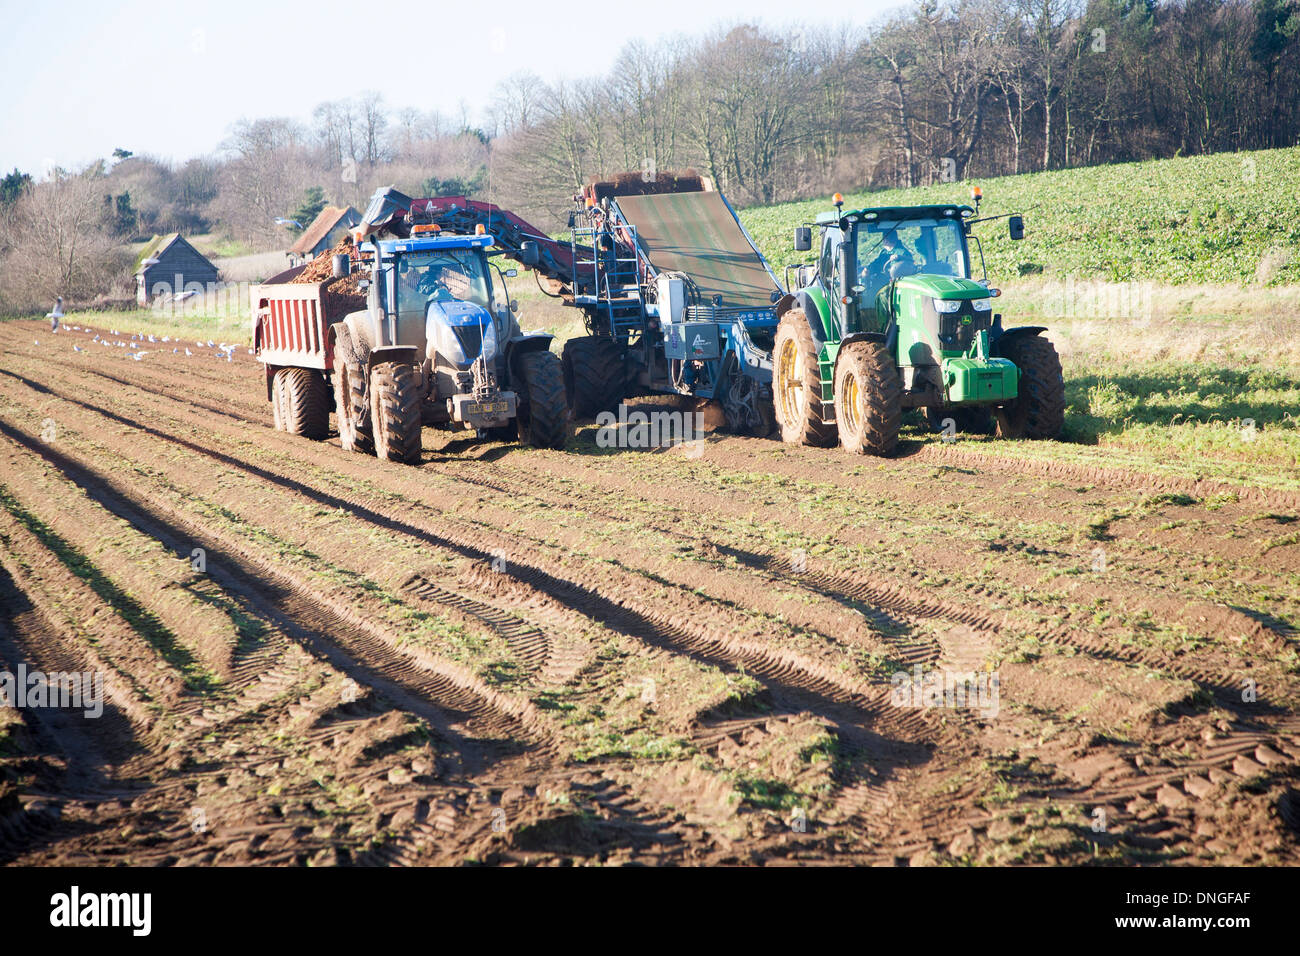 Farm machinery harvesting a winter carrot crop in a field, Ramsholt, Suffolk, England Stock Photo